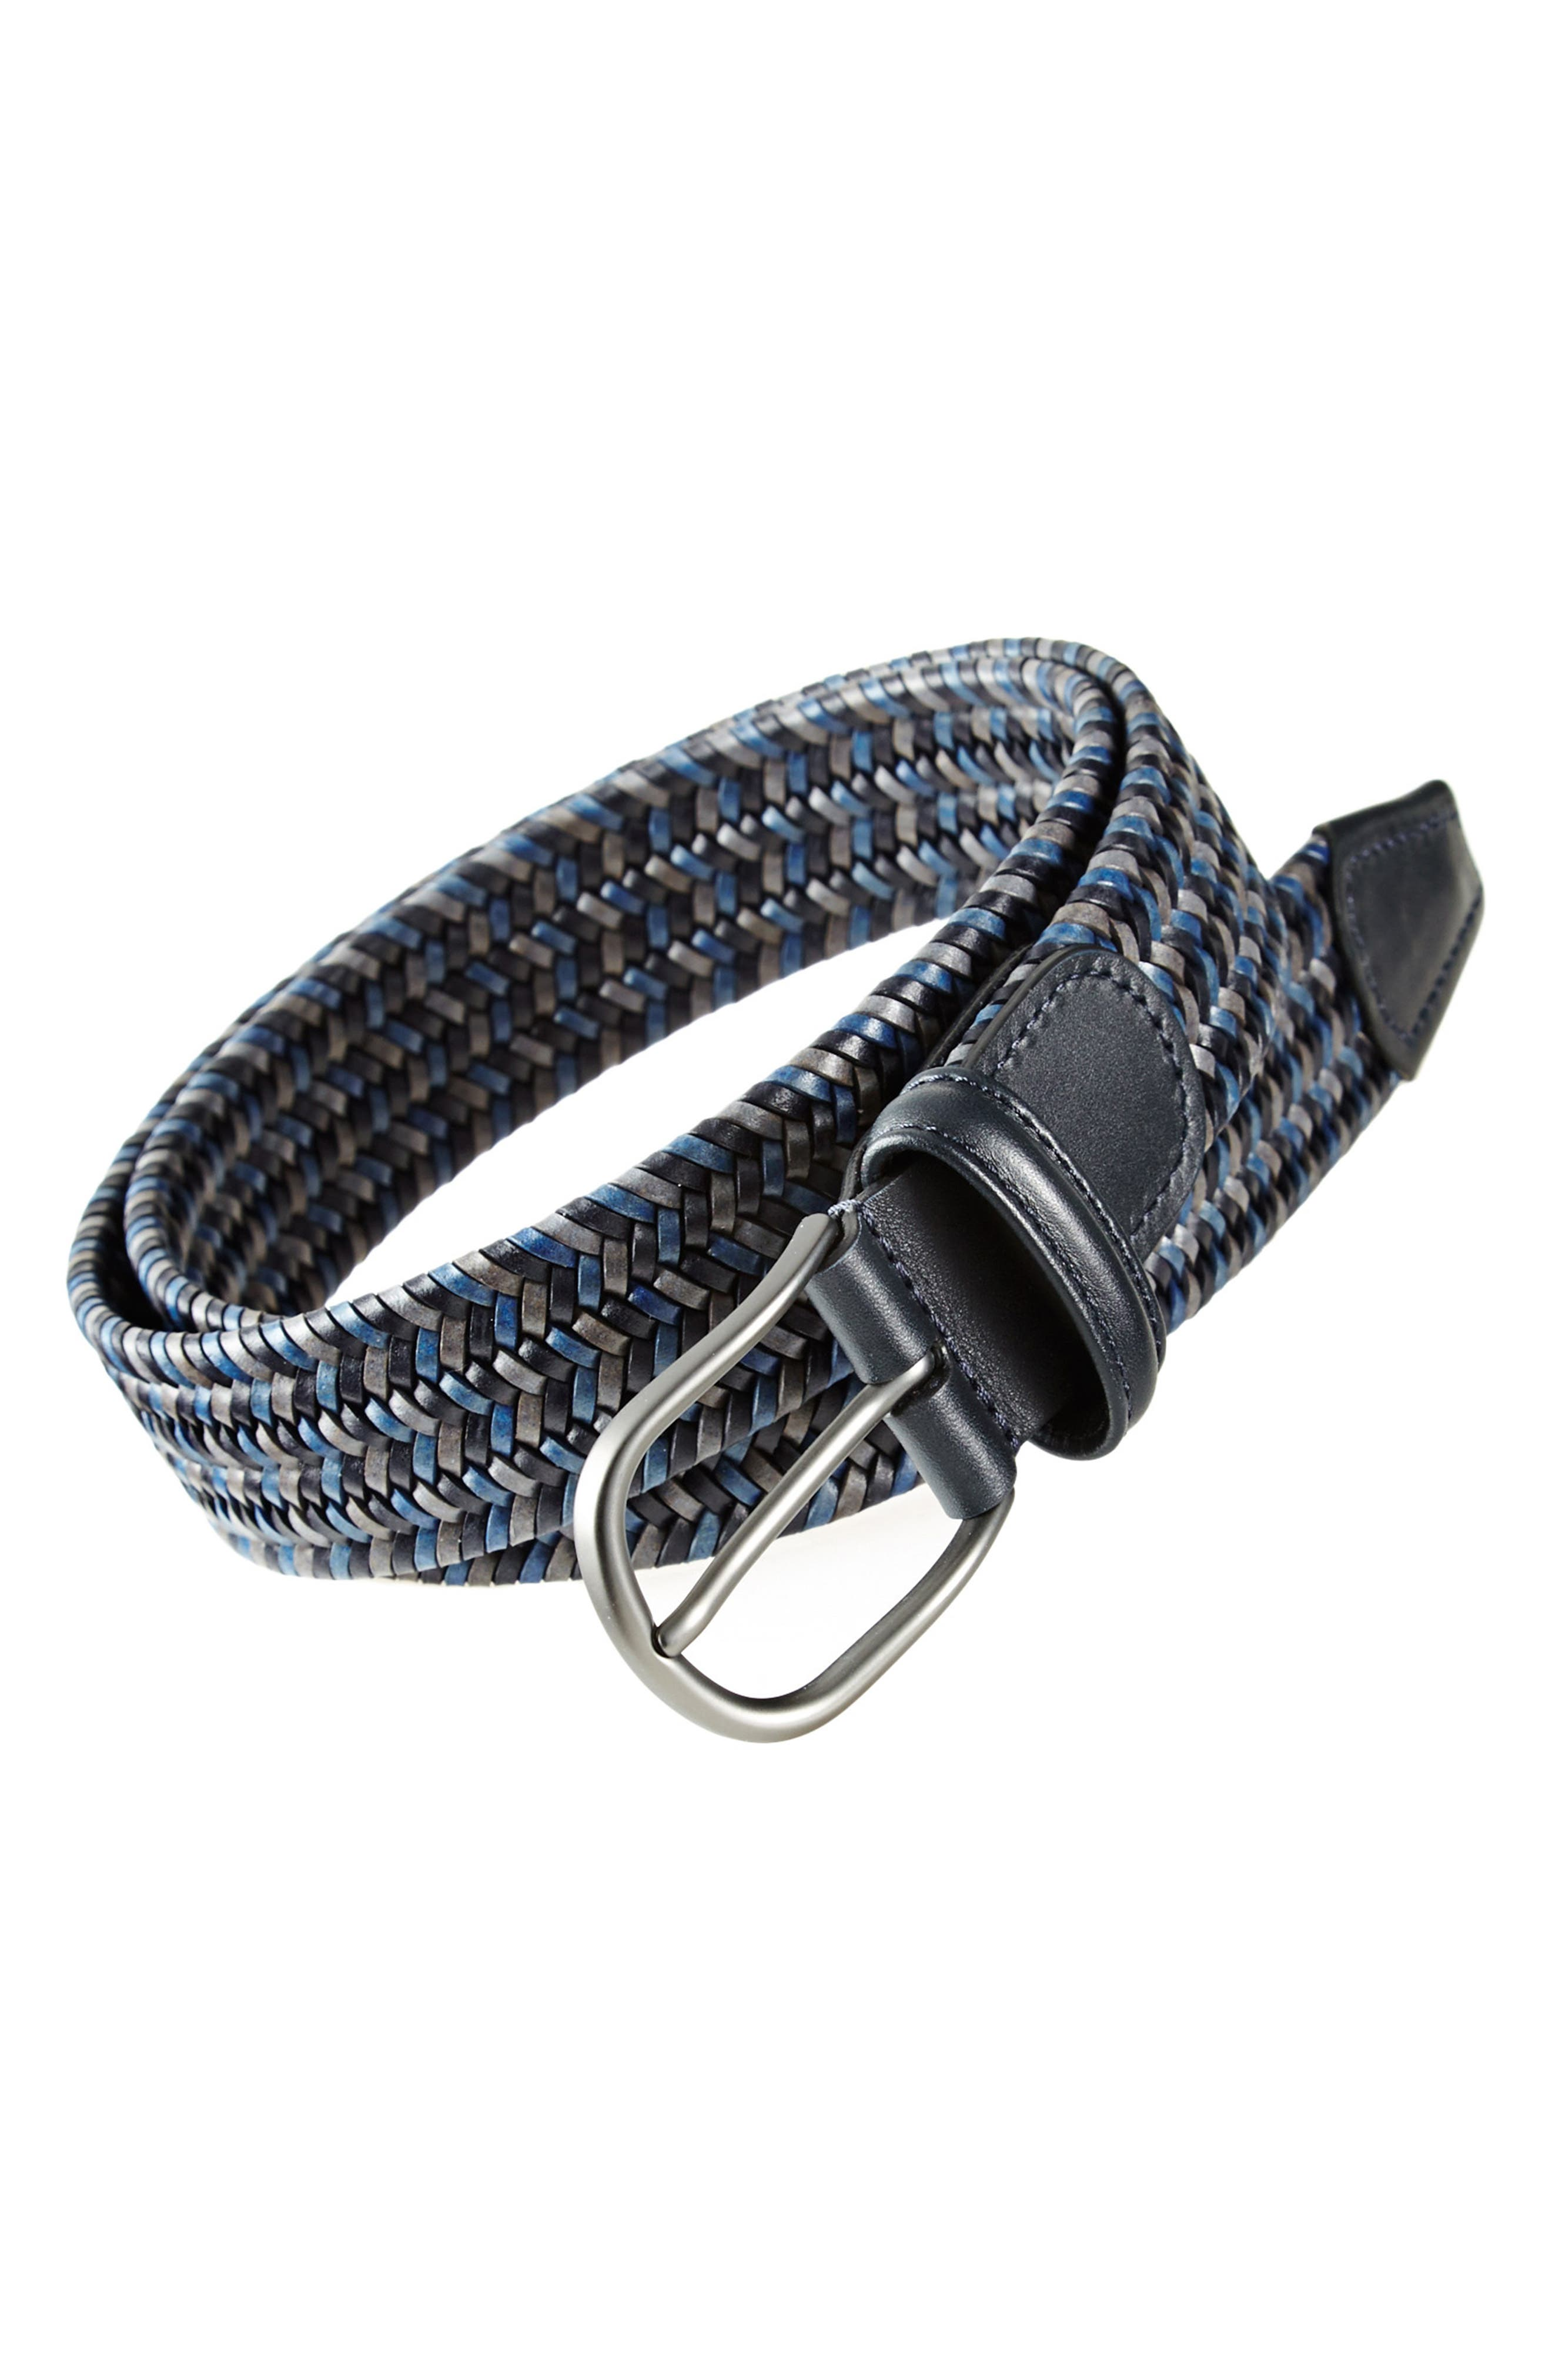 ANDERSONS Stretch Leather Belt in Grey/ Blue/ Navy